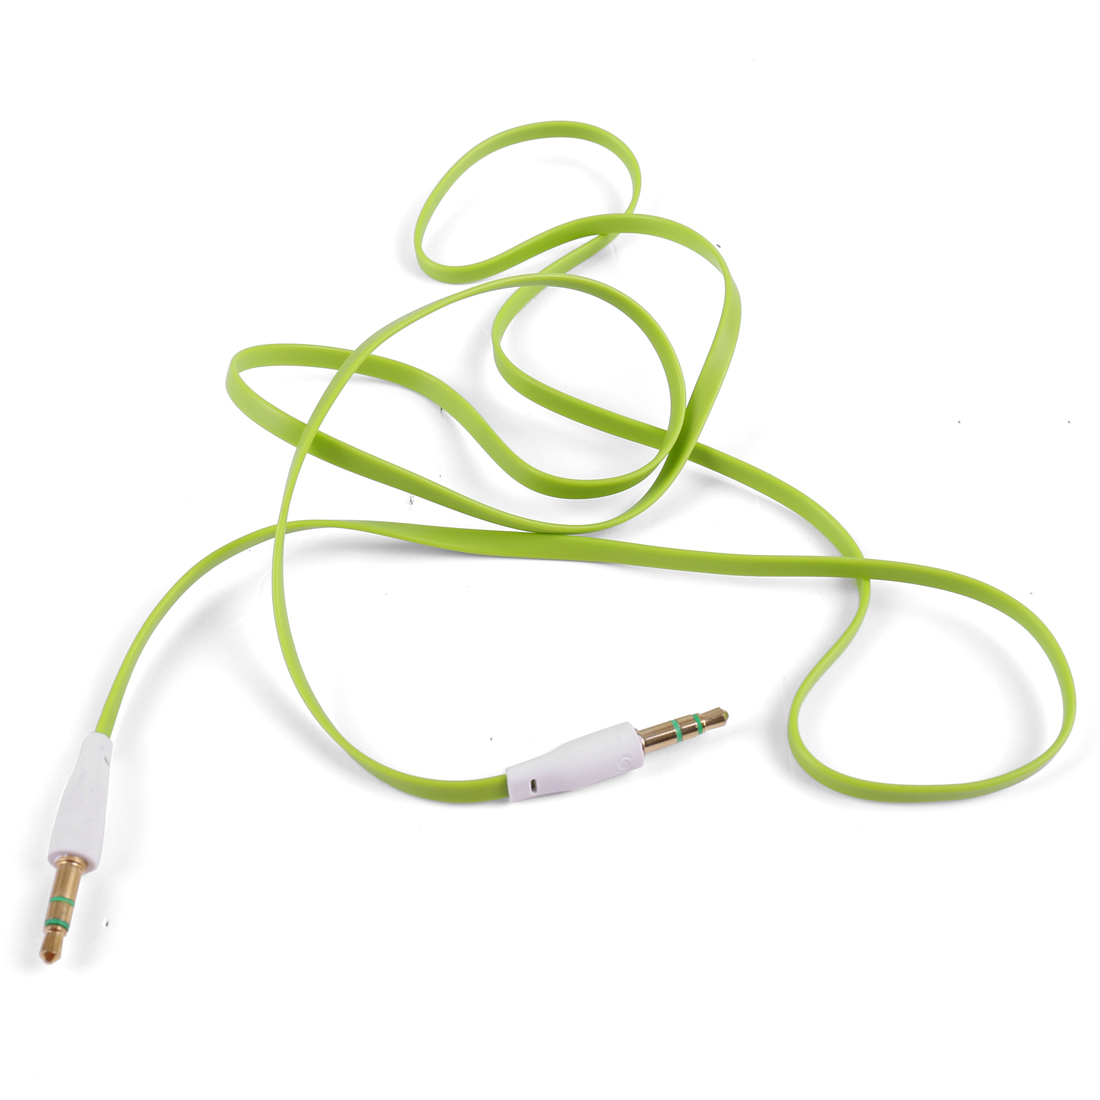 PC MP3 Adapter M/M 3.5mm to 3.5mm Flat Audio Extension Cable 3.4ft Green